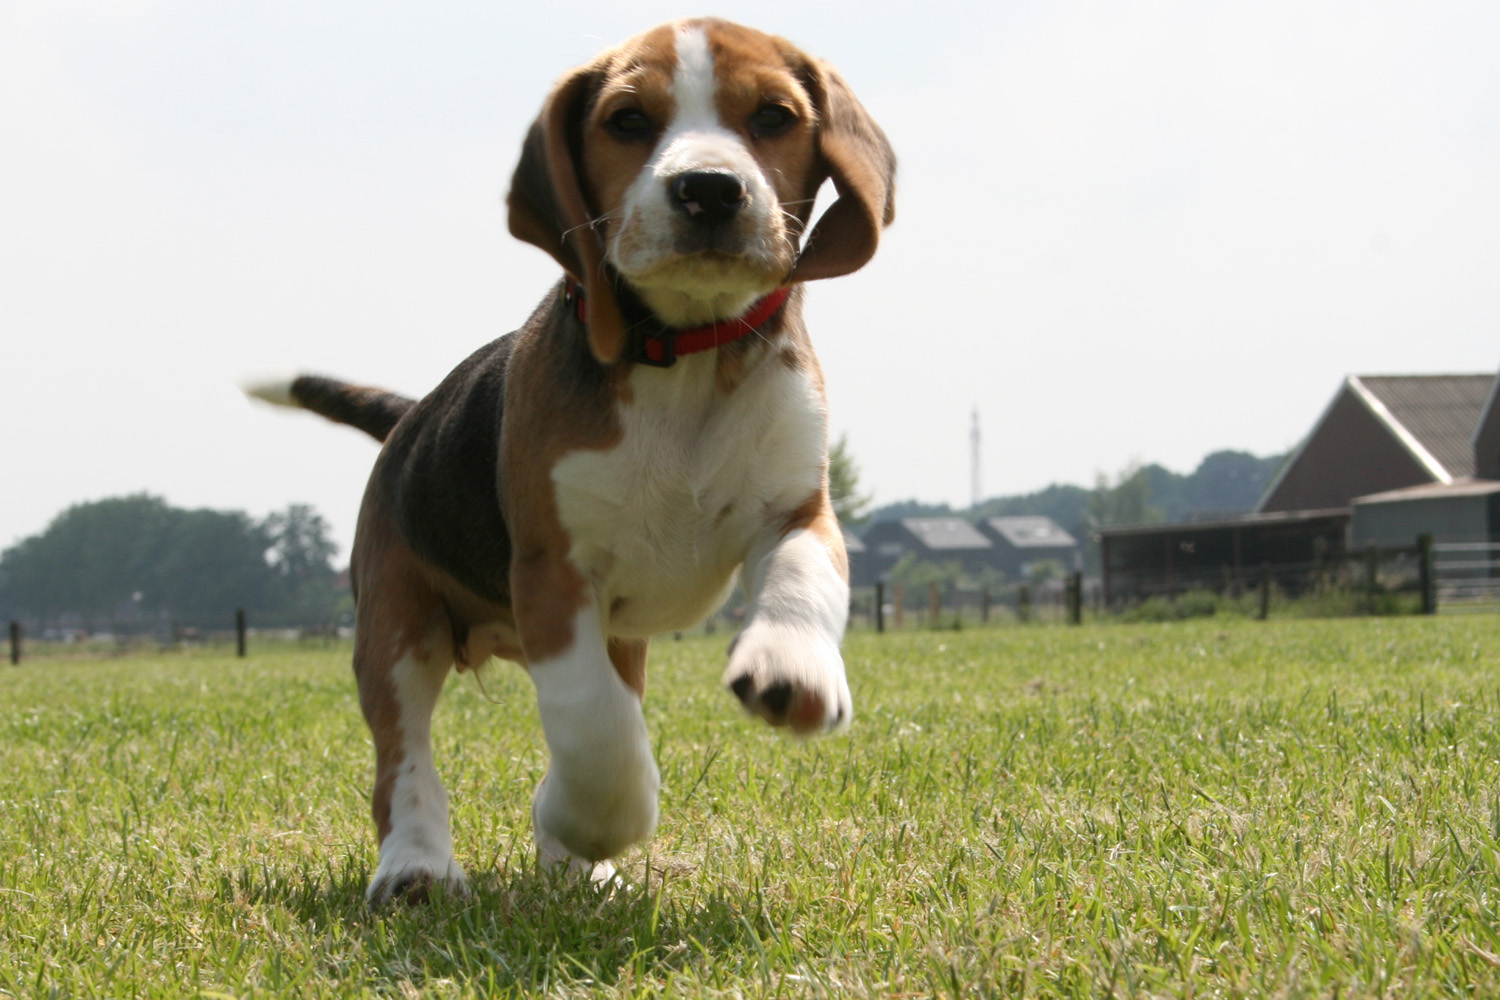 Beagle wallpapers high quality download free voltagebd Images